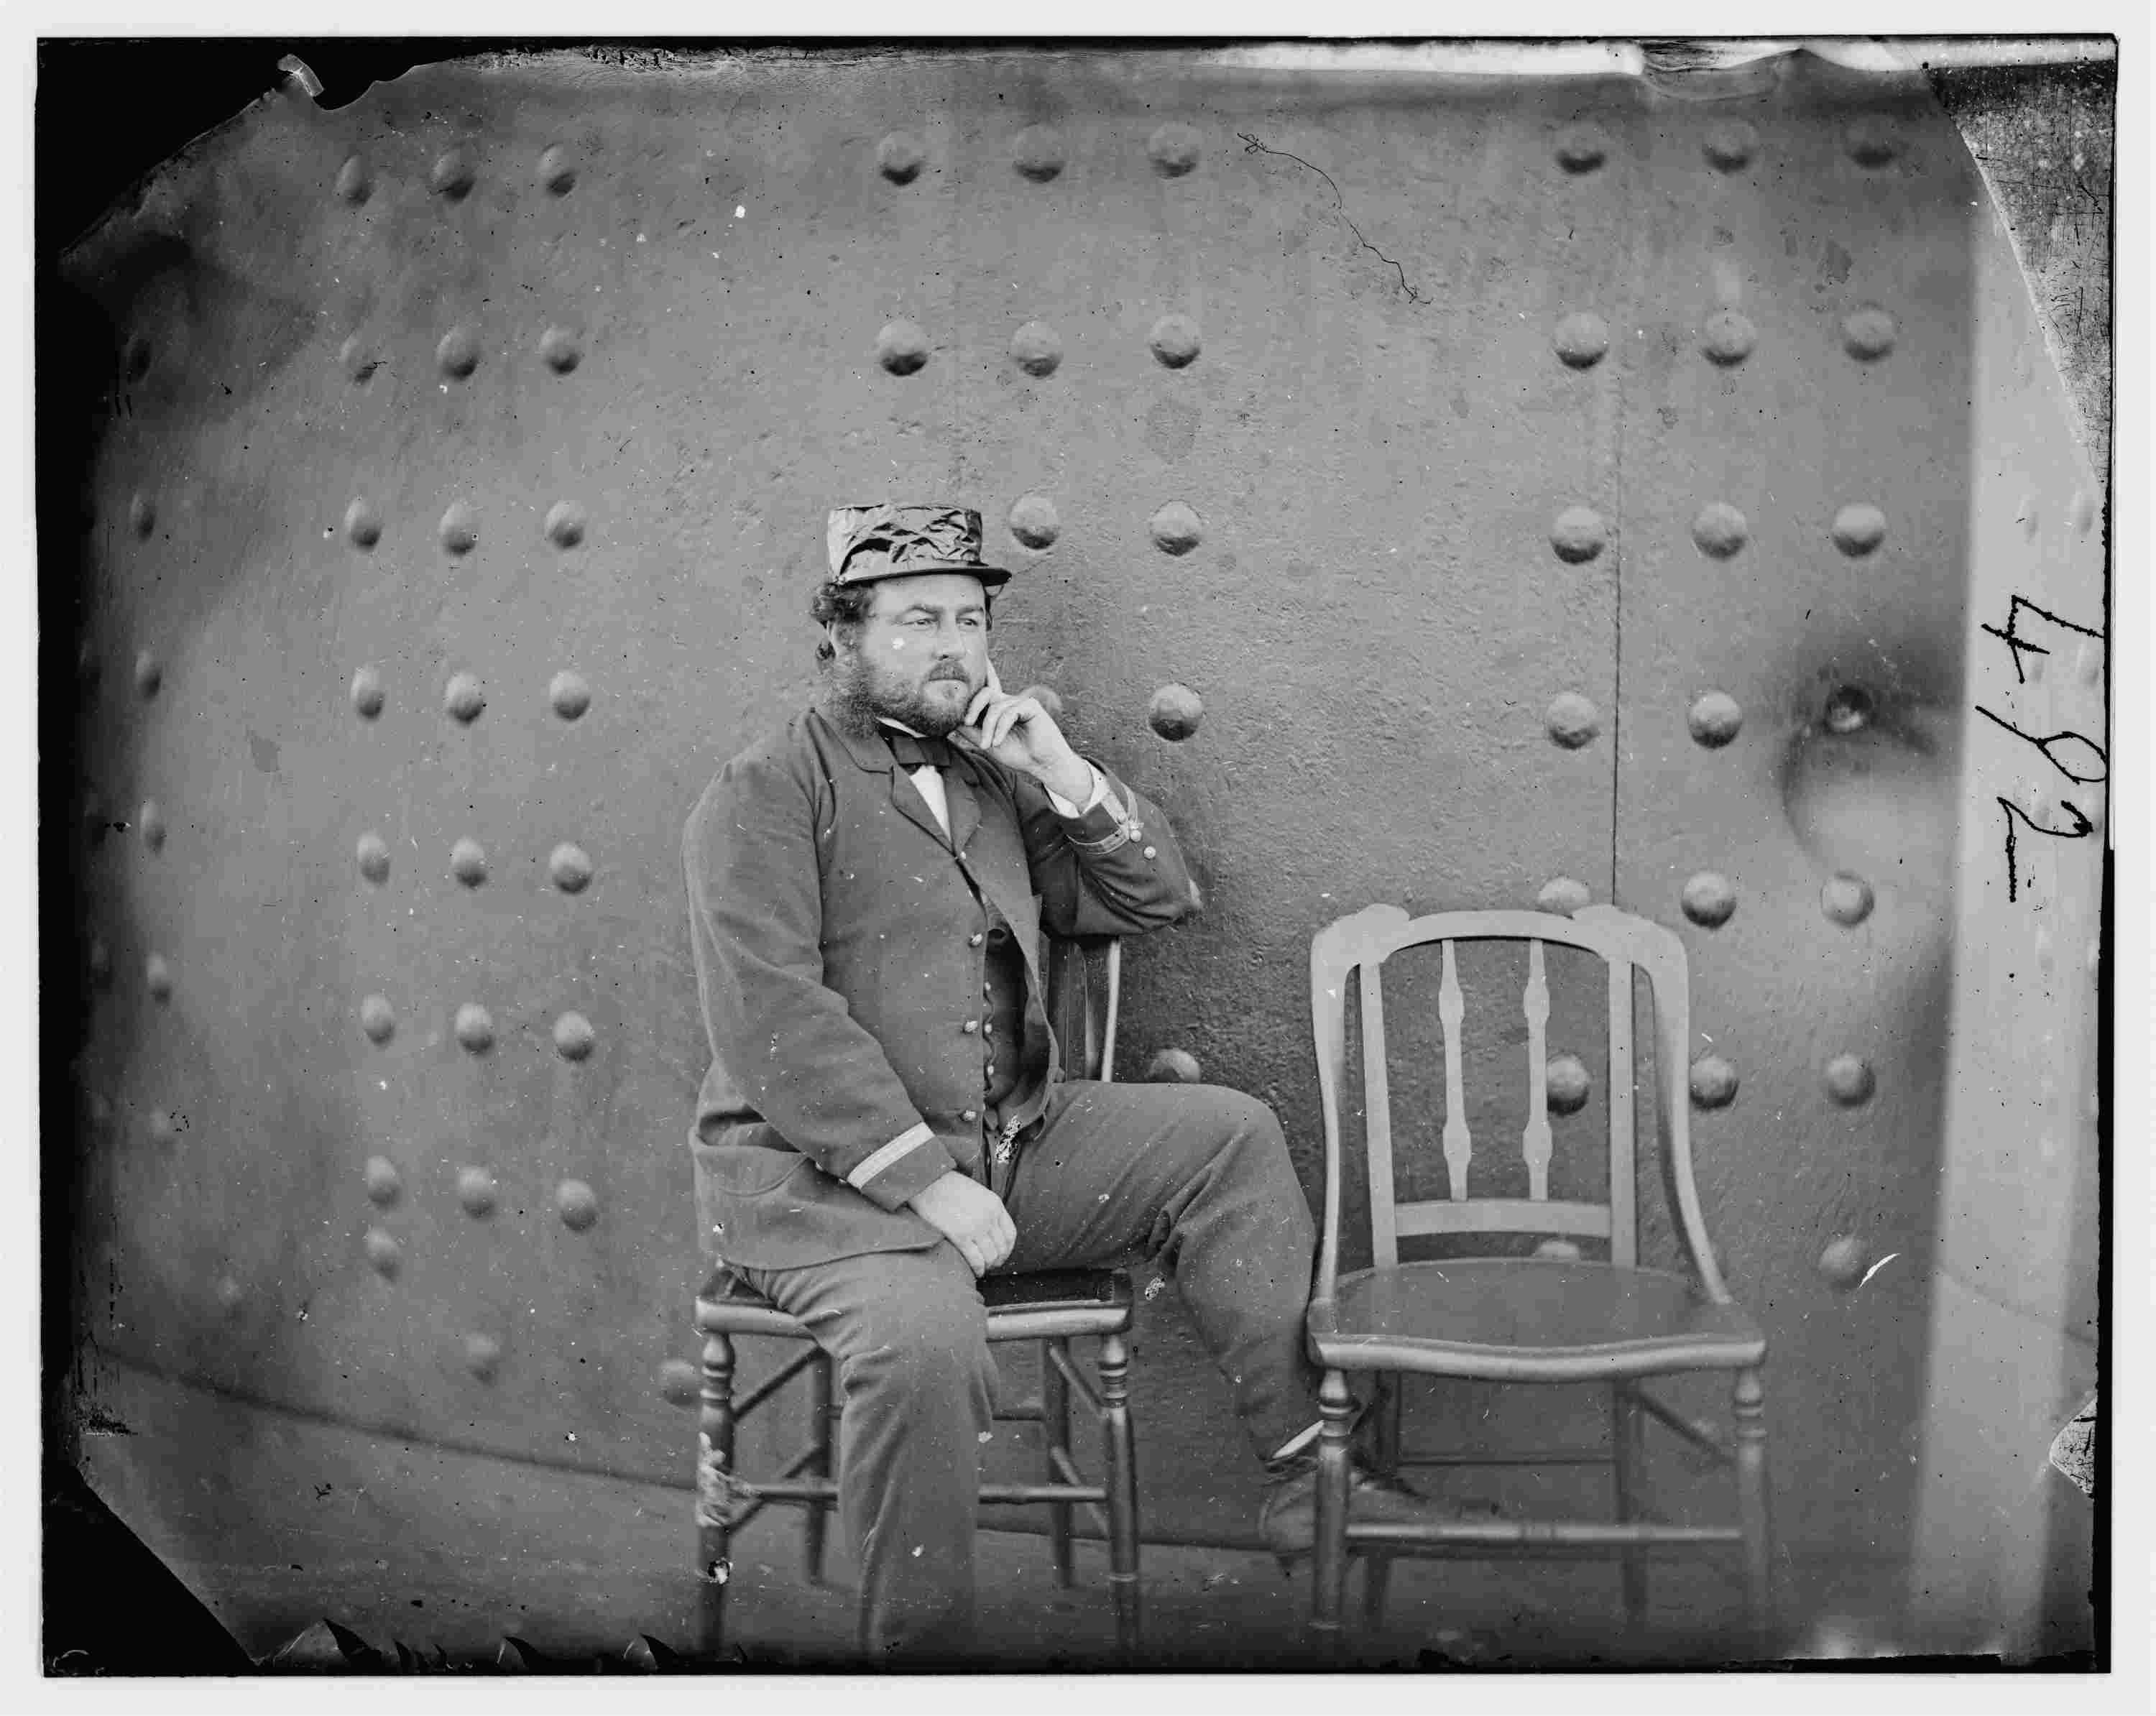 Capt. William Nicholson Jeffers, in a photograph which shows battle damage to the Monitor's turret.